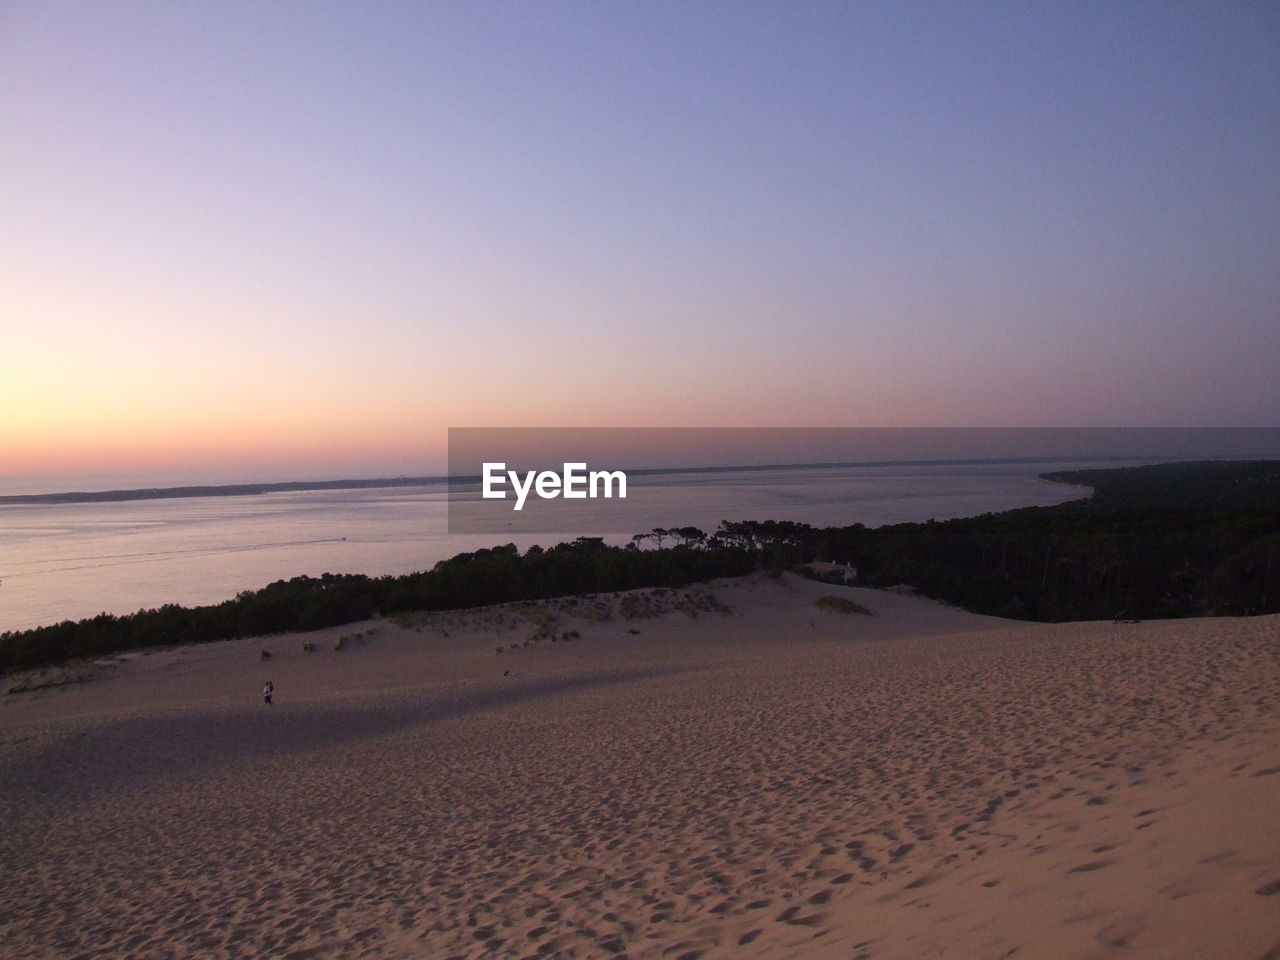 beach, sand, sea, nature, shore, water, sunset, holiday, summer, clear sky, landscape, tranquility, beauty in nature, scenics, horizon, outdoors, sky, no people